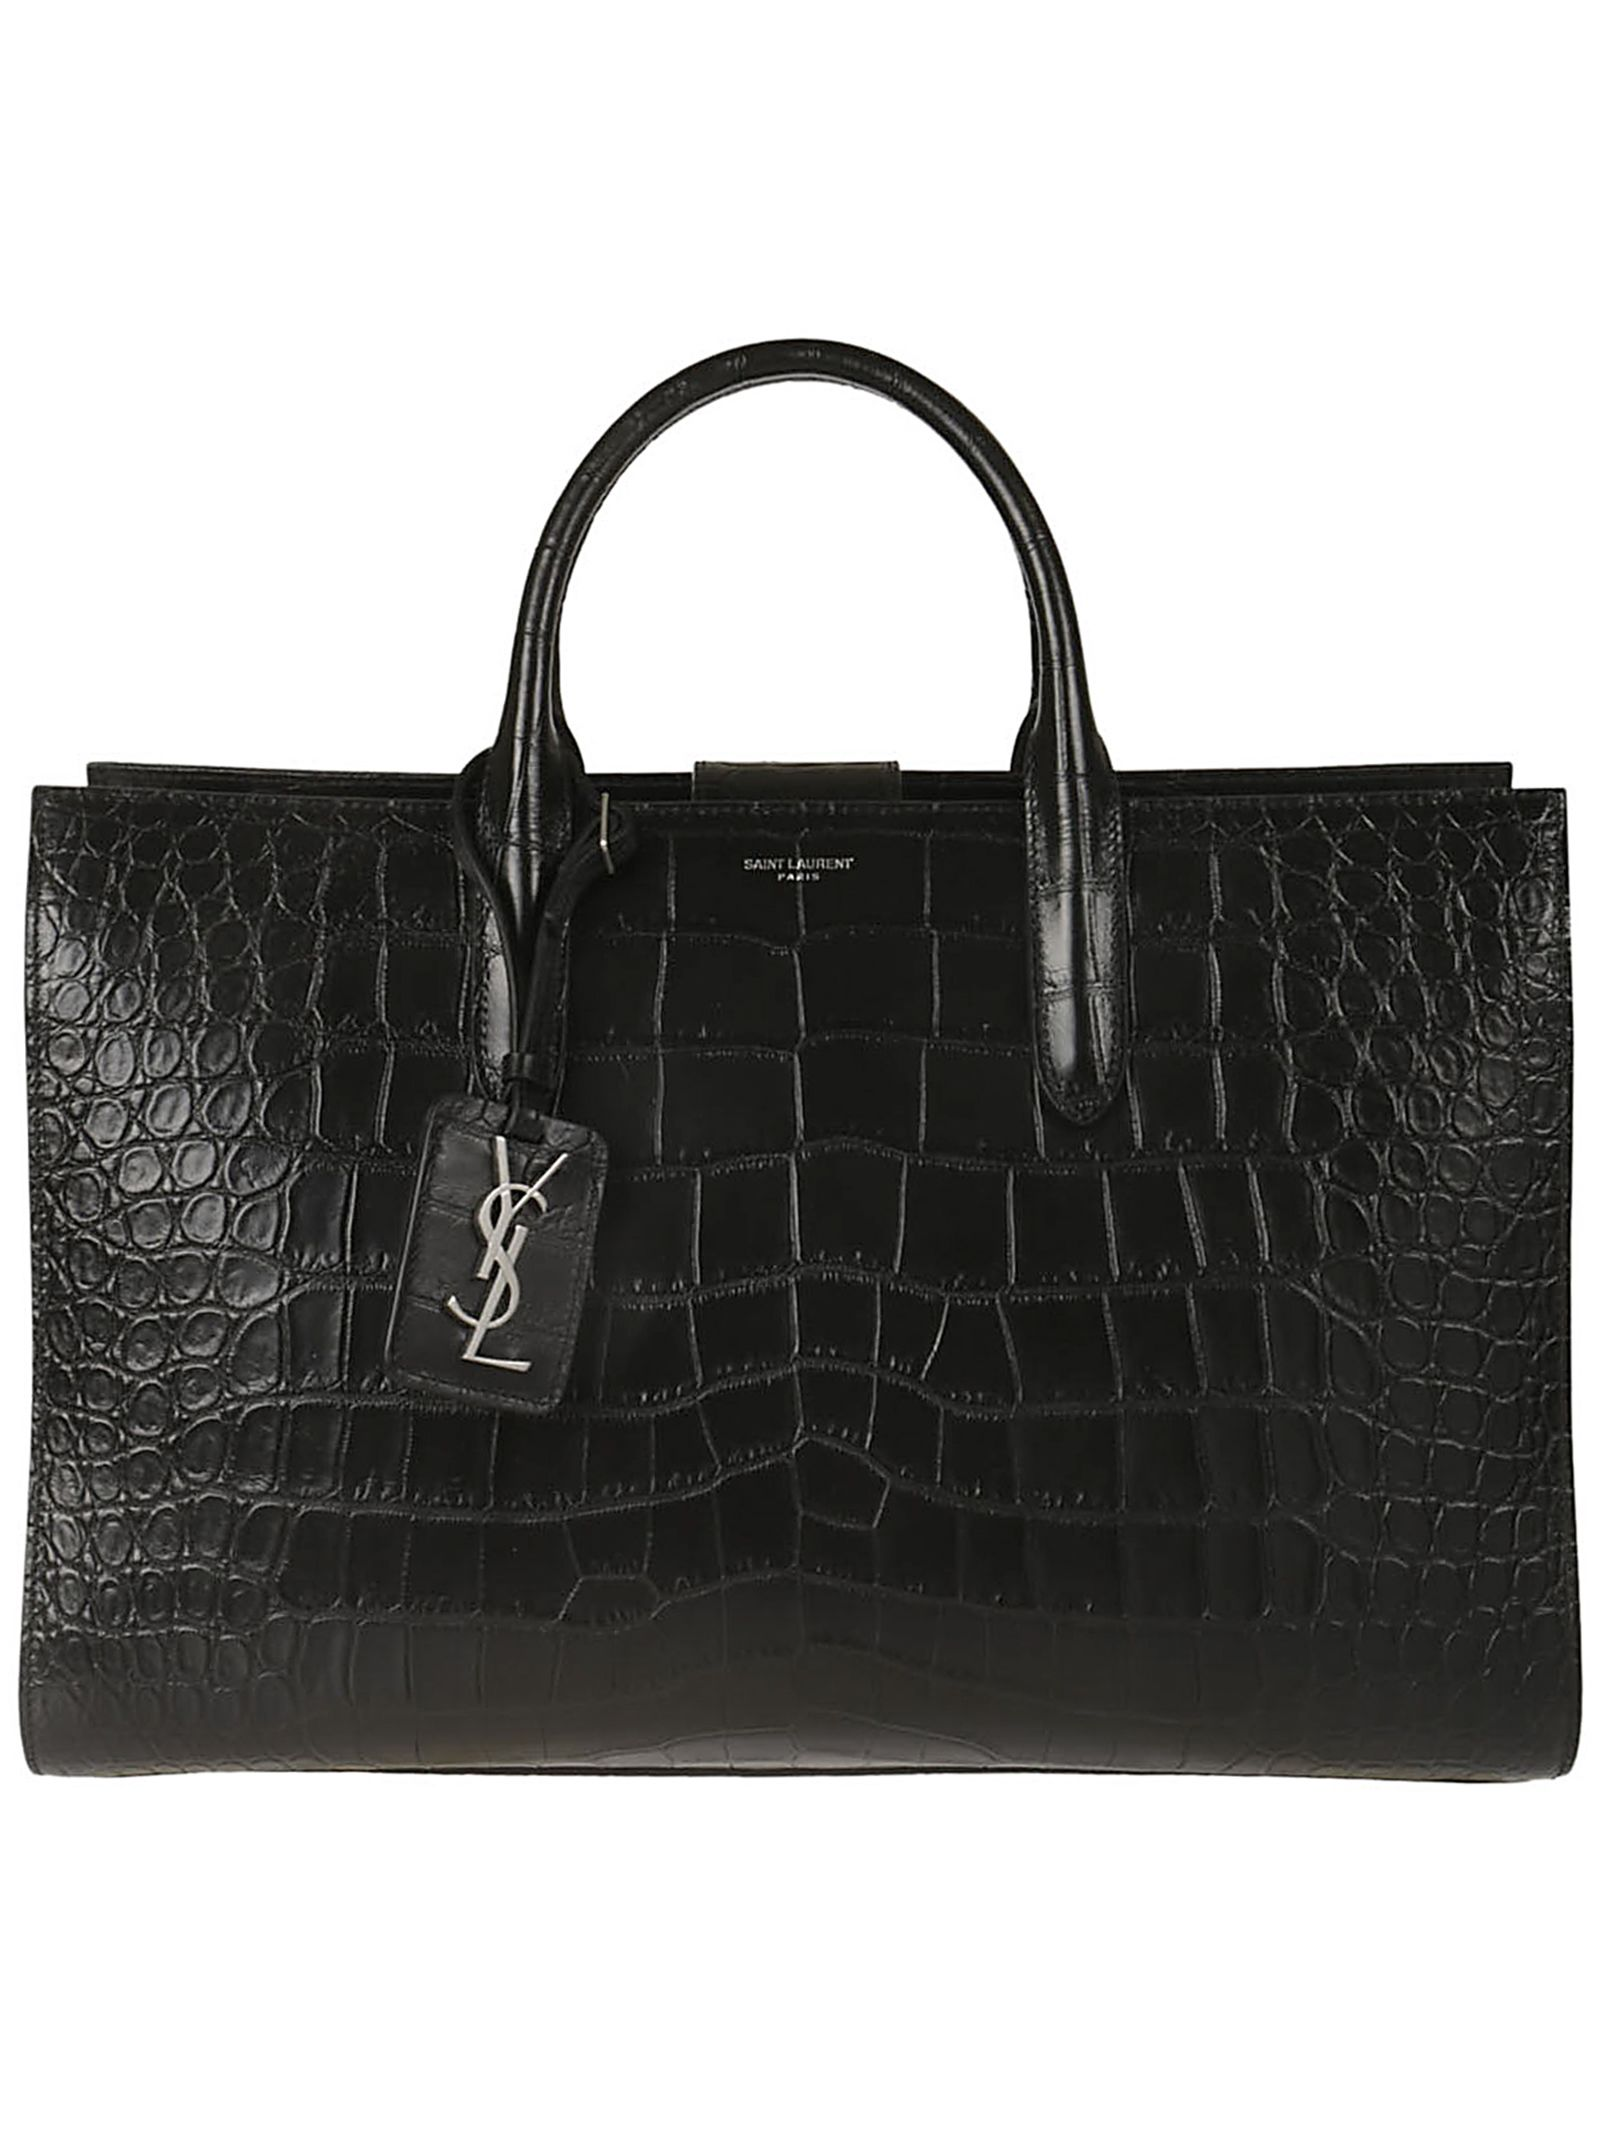 Saint Laurent Quilted Tote